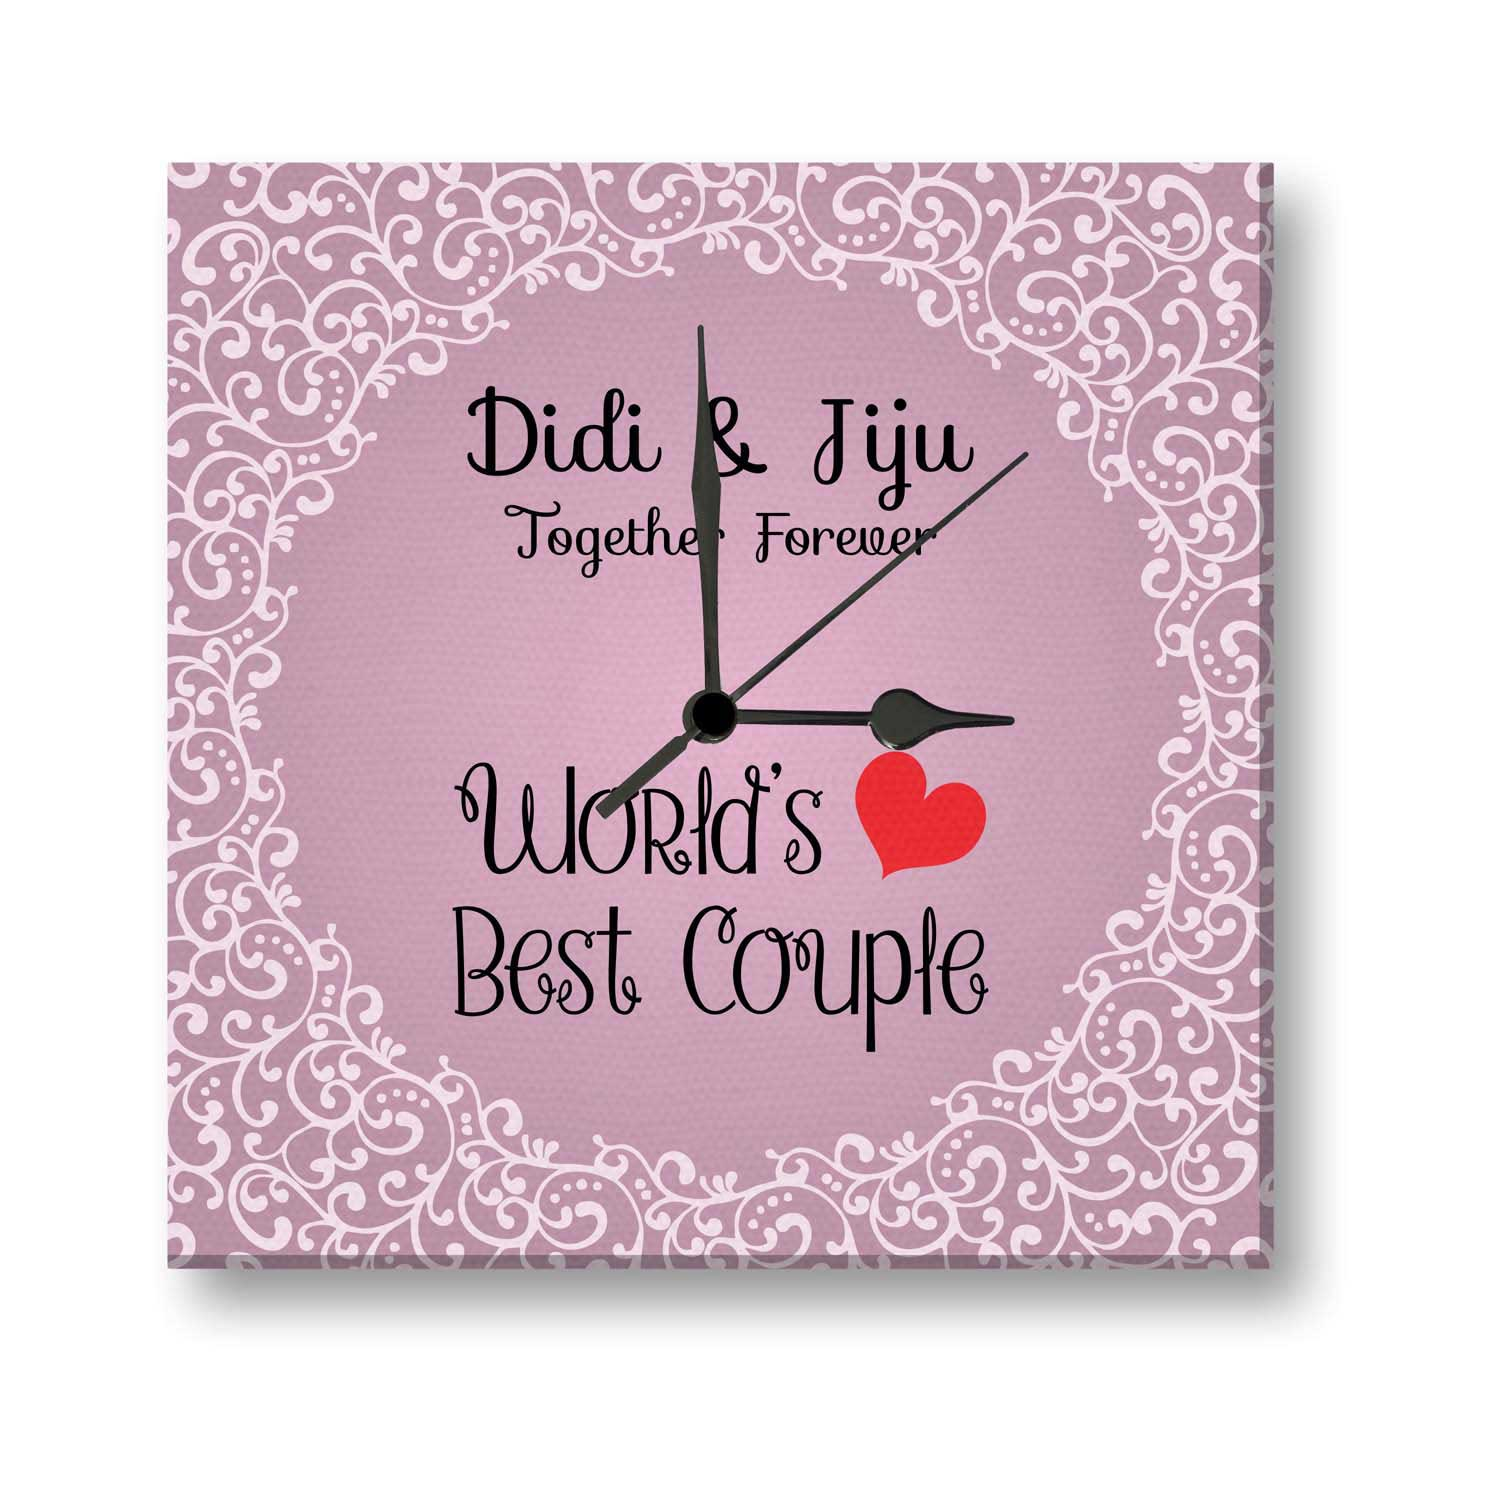 Happy Anniversary Di And Jiju Wedding Wishes Quotes For Didi And Jiju Quote Wishes